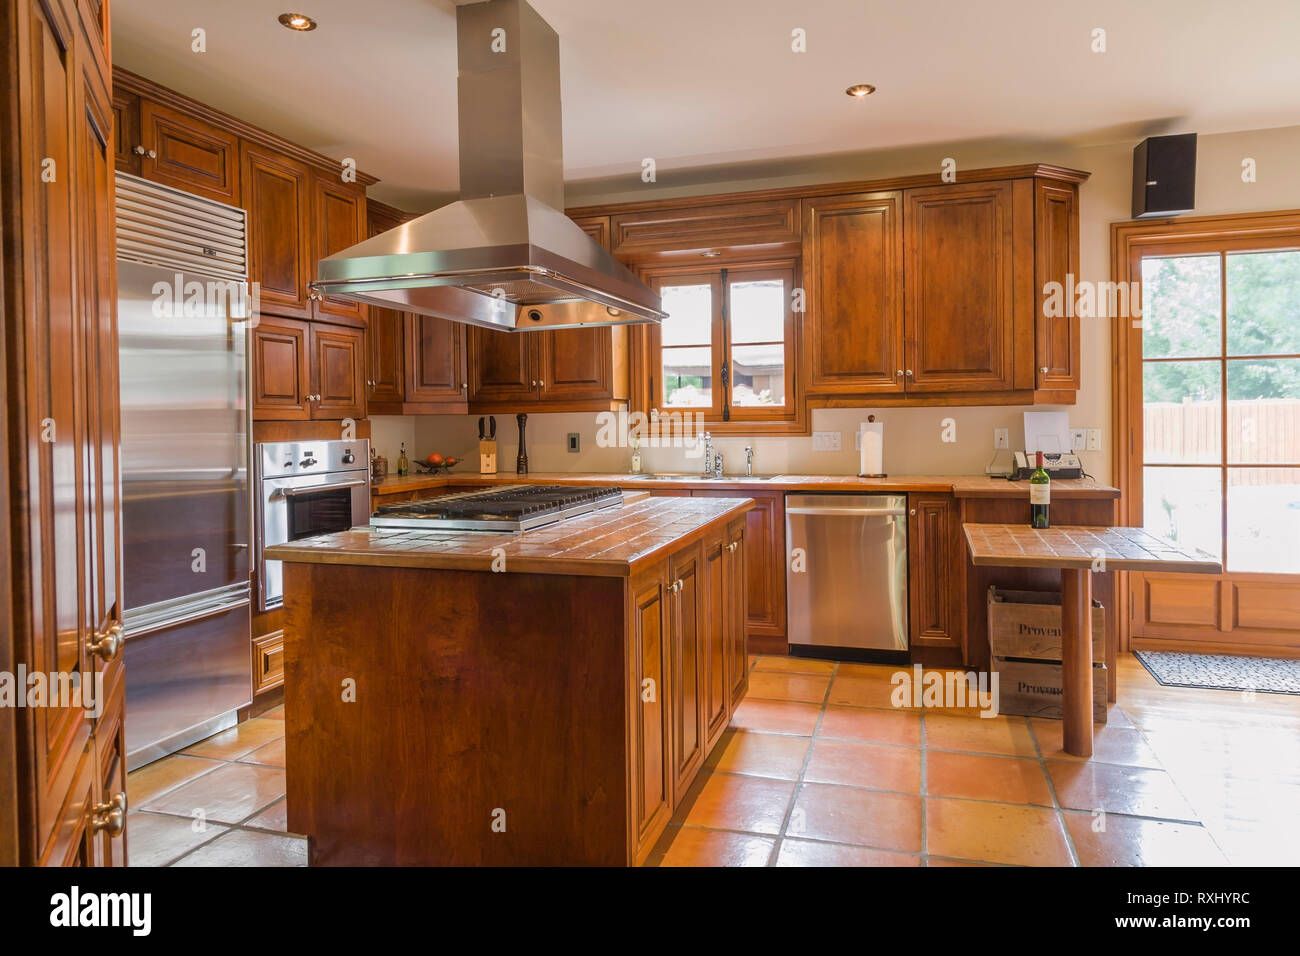 Maple Wood Cabinets And Island With Marble Tile Countertop In Kitchen With Terracotta Ceramic Tile Floor Inside An Old 1877 French Regime Style House Quebec Canada This Image Is Property Released Cupr0330